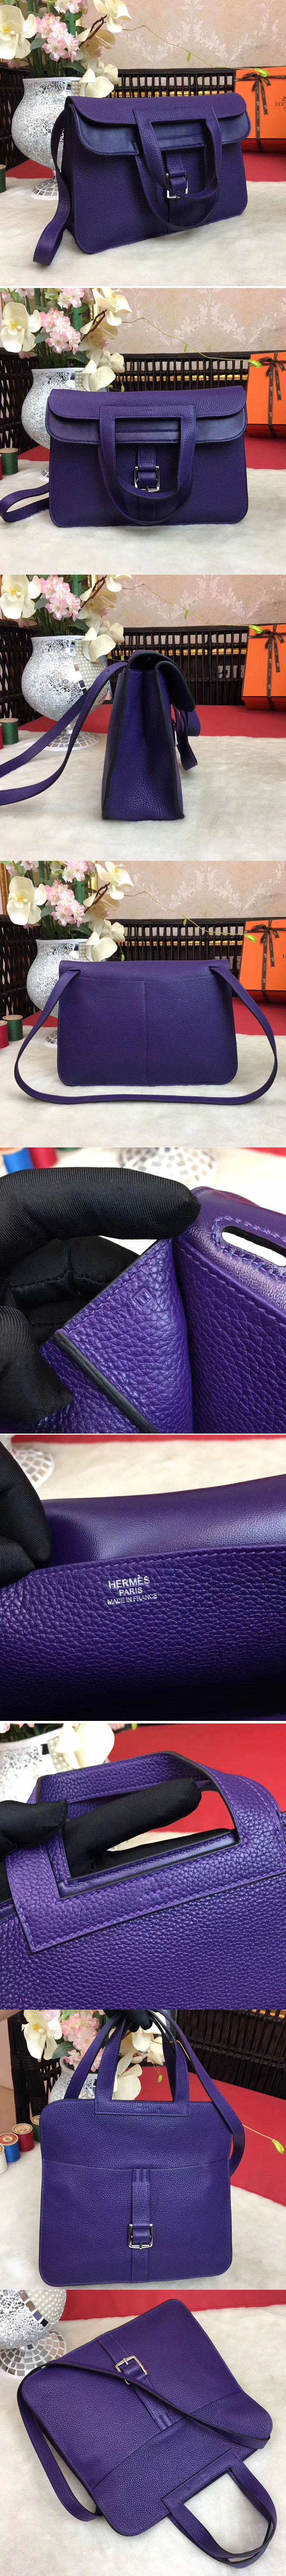 Replica Hermes Halzan 31 Bags Original Taurillon Leather Purple